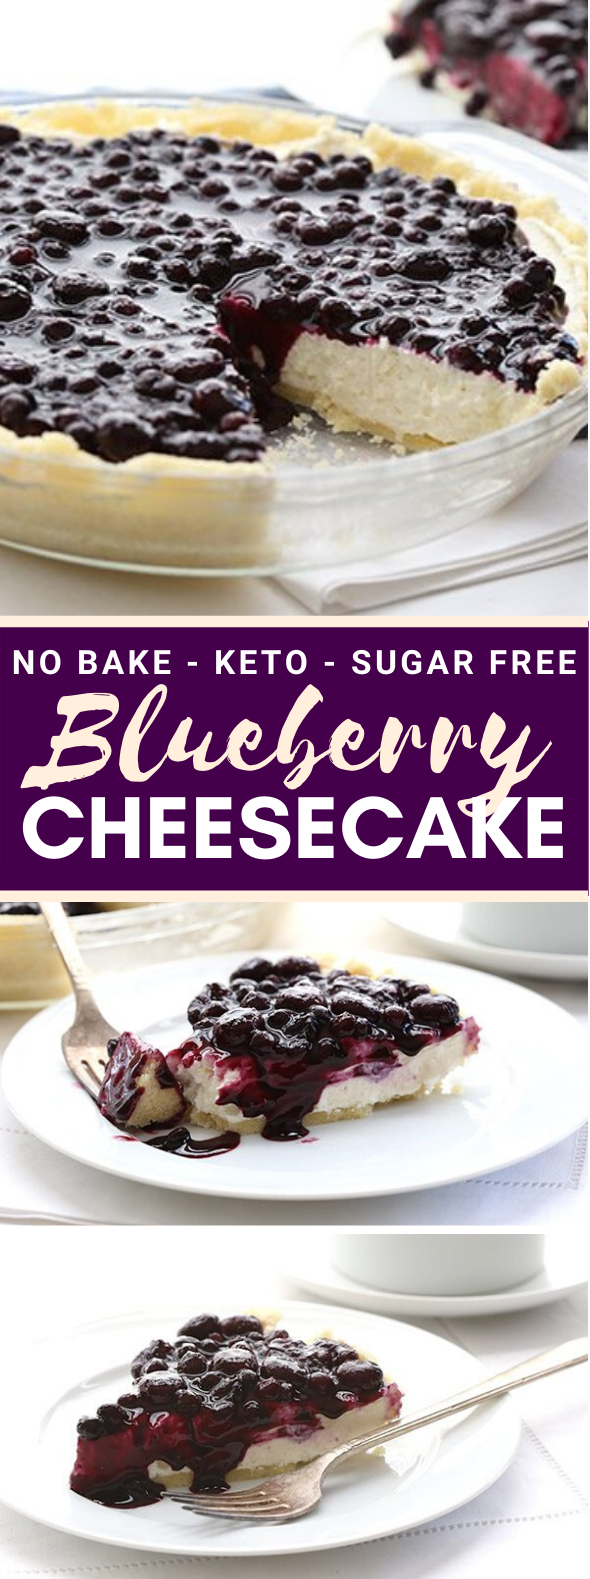 NO BAKE BLUEBERRY CHEESECAKE PIE #healthy #ketodiet